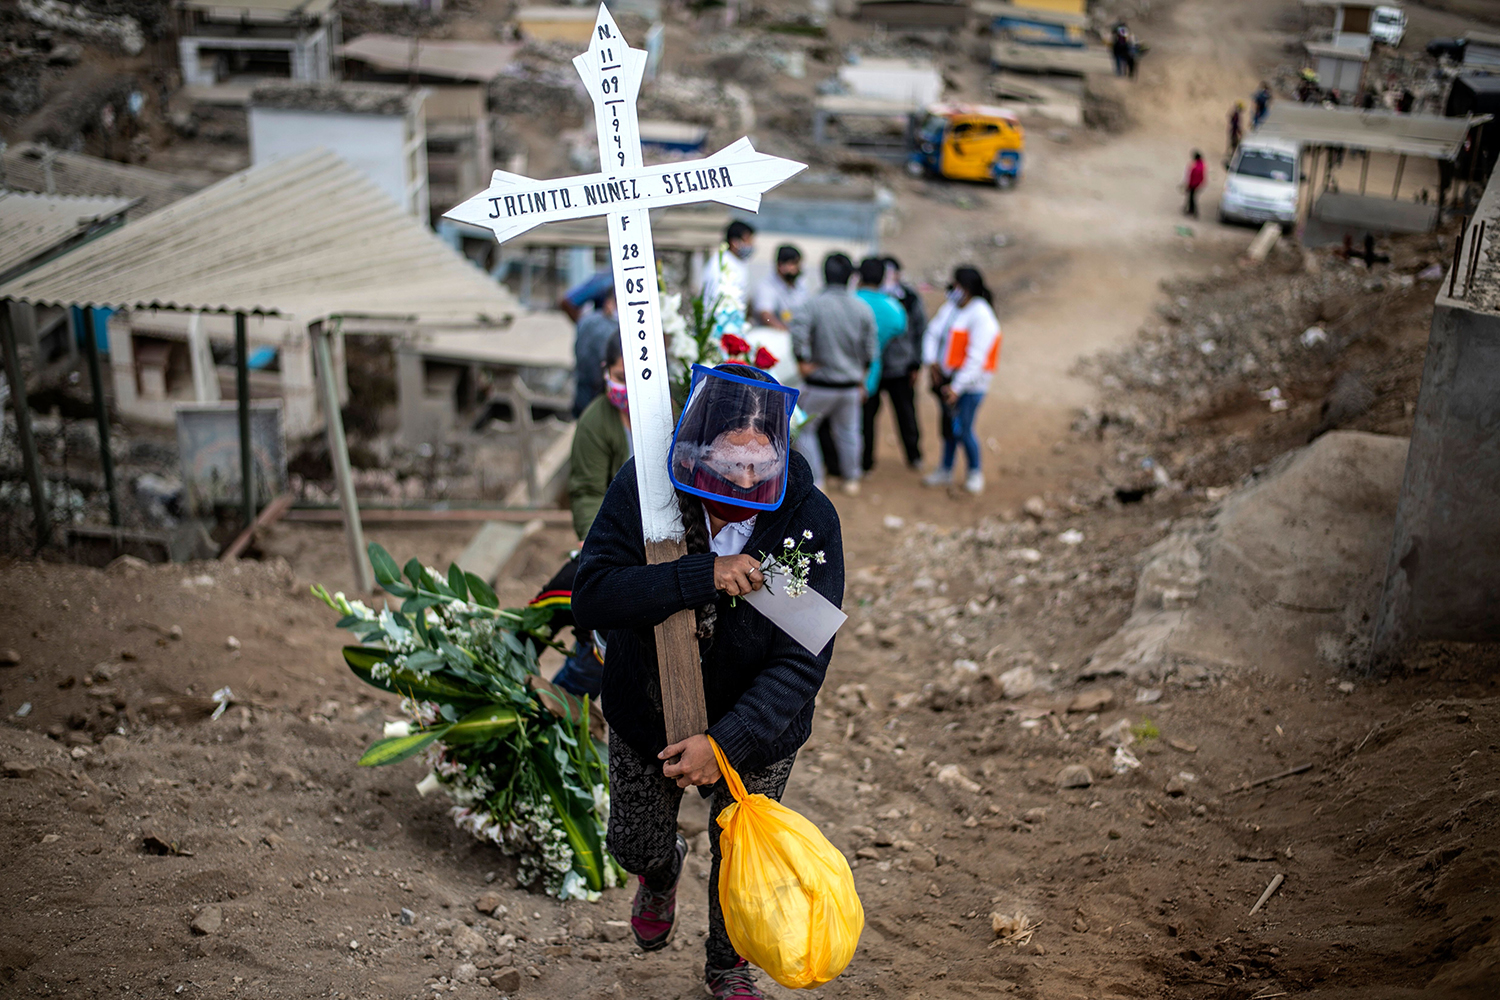 A relative of a suspected COVID-19 victim carries a cross during the burial at the Nueva Esperanza cemetery in the southern outskirts of Lima, Peru, on May 30. ERNESTO BENAVIDES/AFP via Getty Images